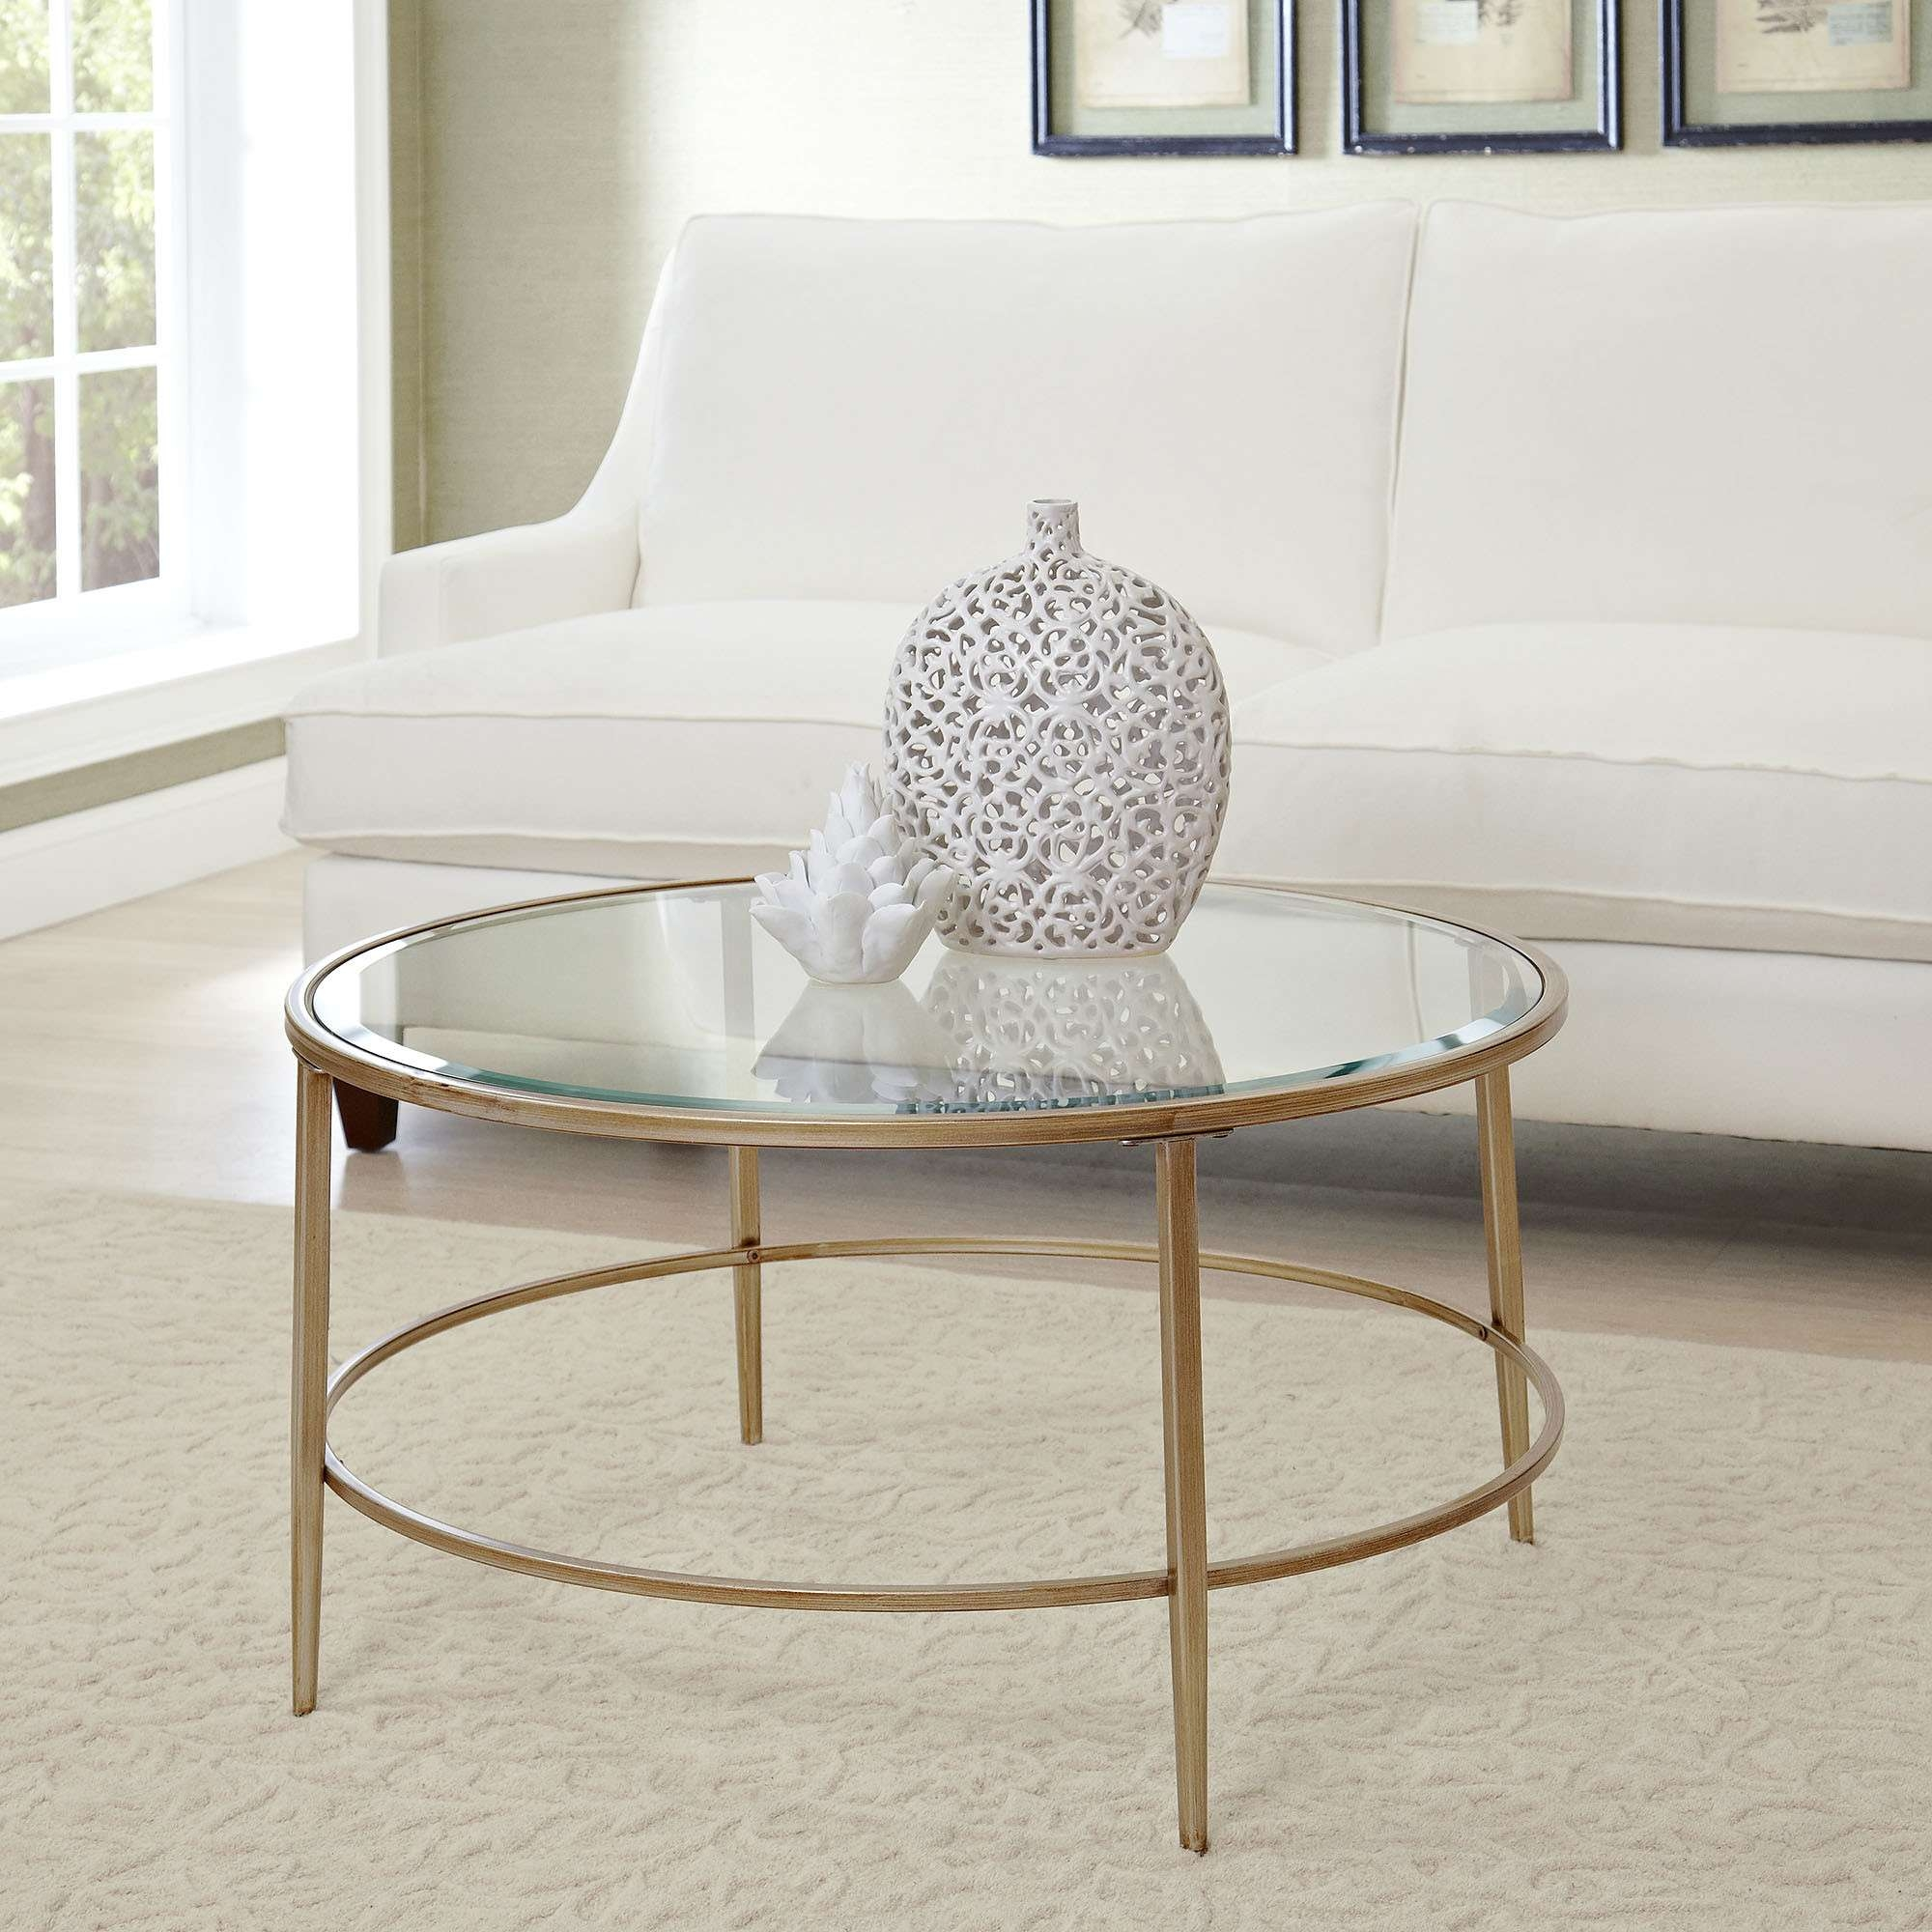 Widely Used Circular Glass Coffee Tables With Regard To Coffee Tables : Gold Glass Coffee Table Uttermost Henzler And Leaf (View 20 of 20)